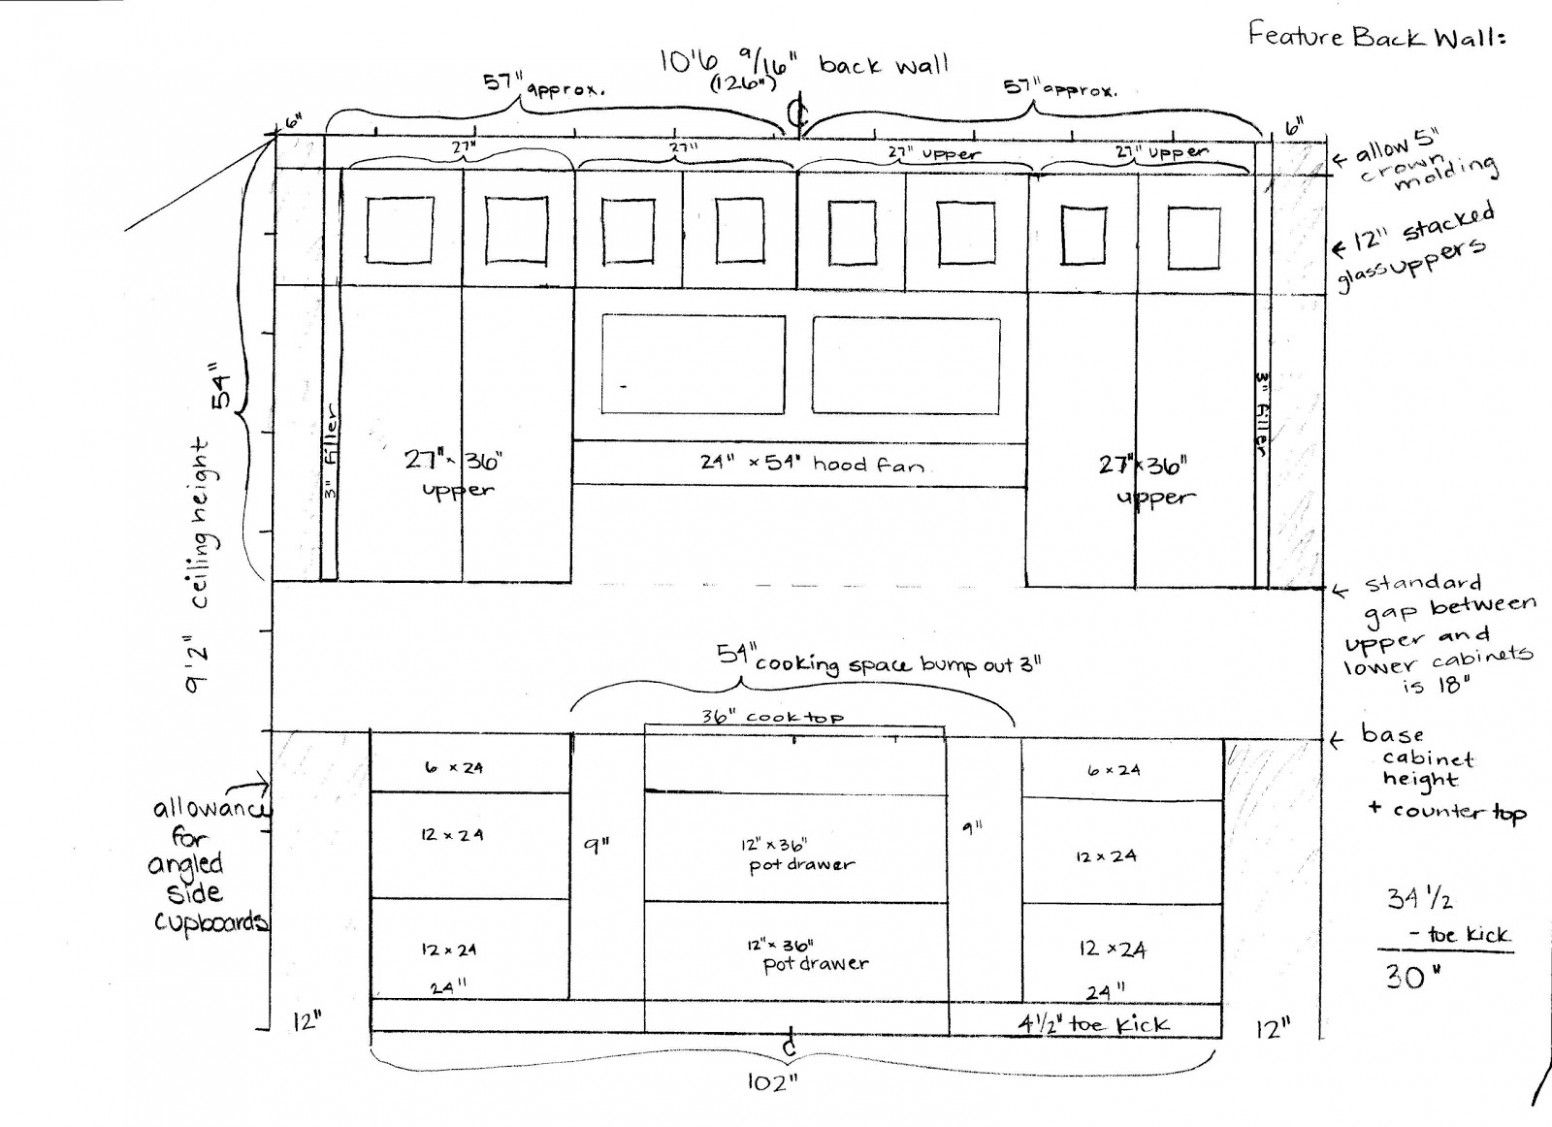 7 Beautiful Kitchen Cabinet Dimensions Pdf In 2020 Kitchen Cabinet Dimensions Kitchen Cabinets Height Kitchen Cabinet Plans